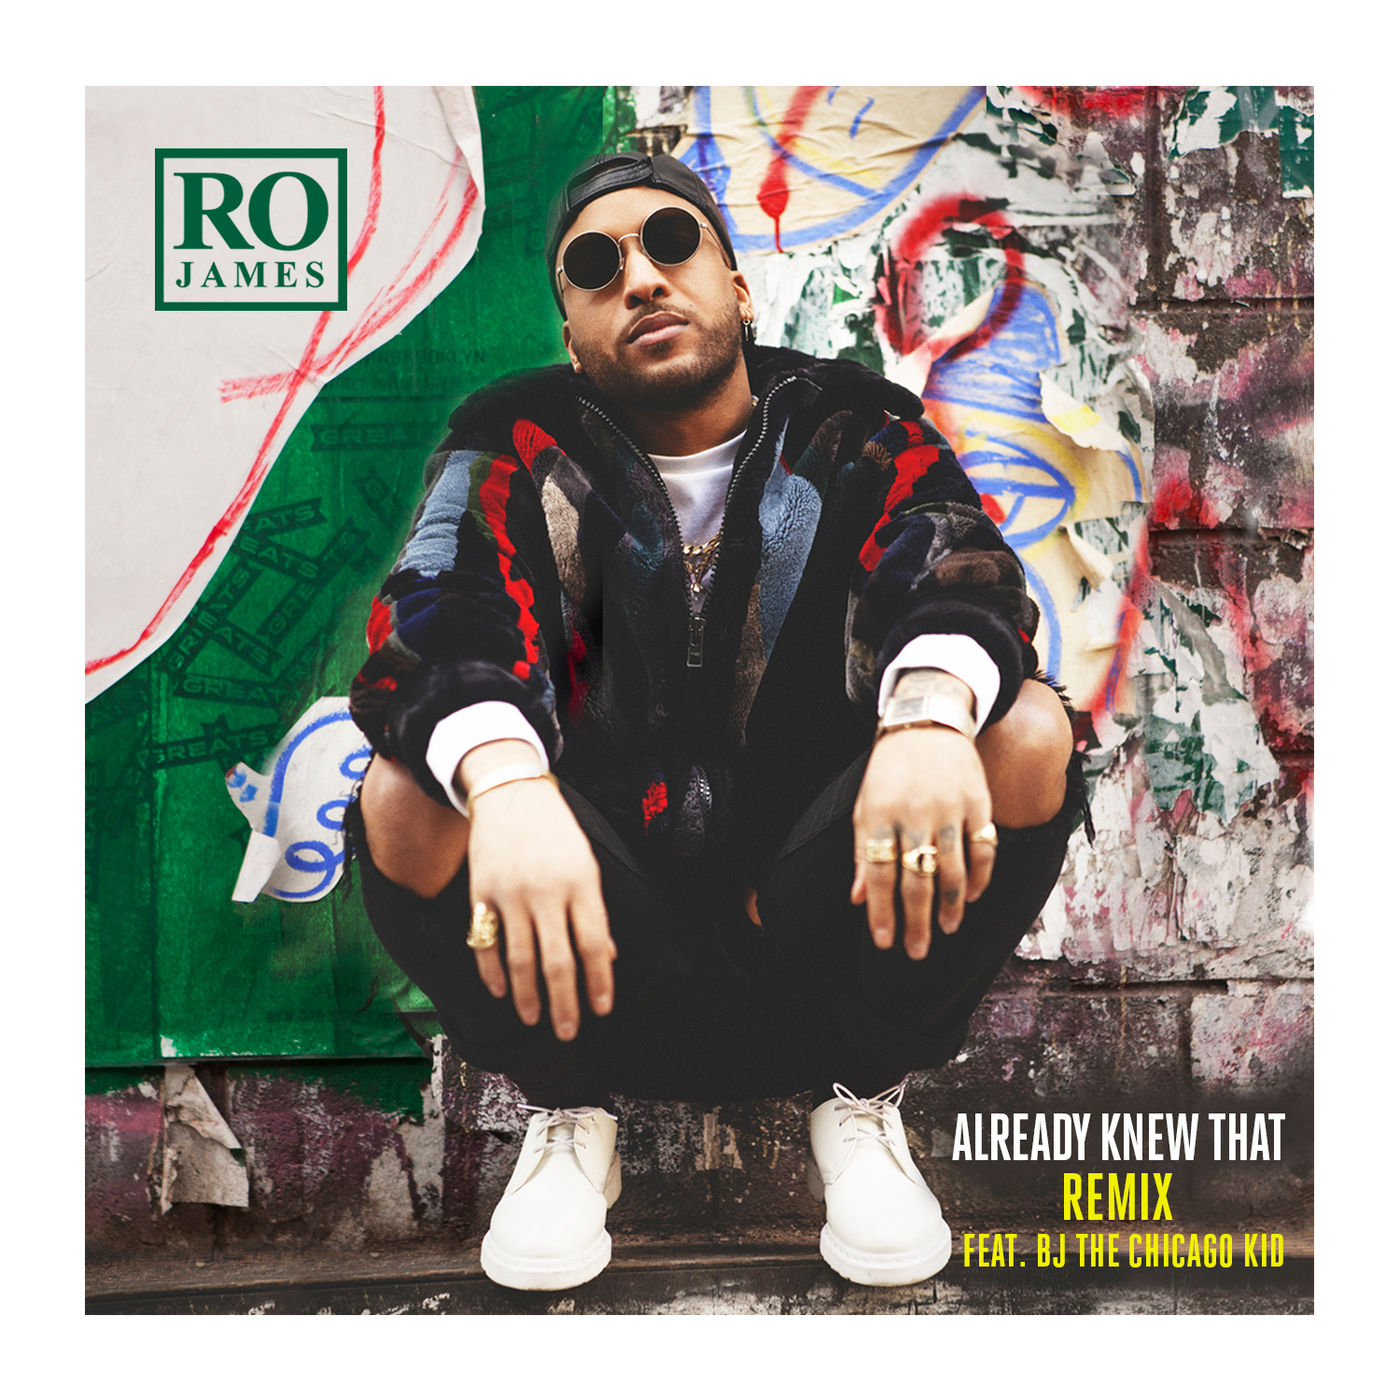 Ro James - Already Knew That (Remix) [feat. BJ the Chicago Kid] - Single Cover